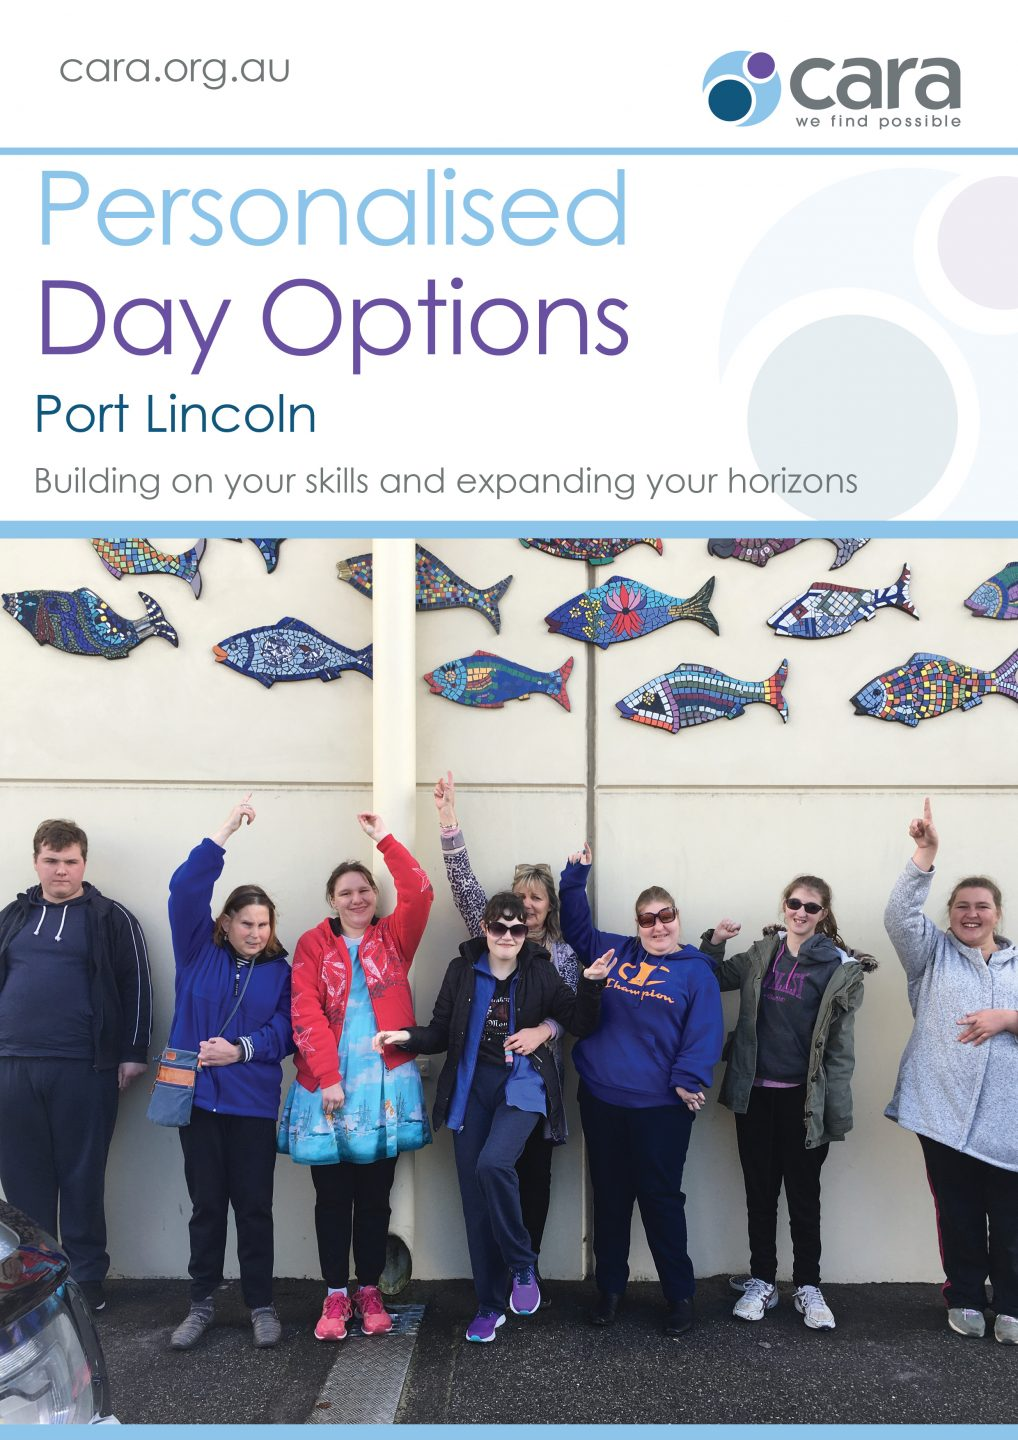 Personalised Day Options - Port Lincoln